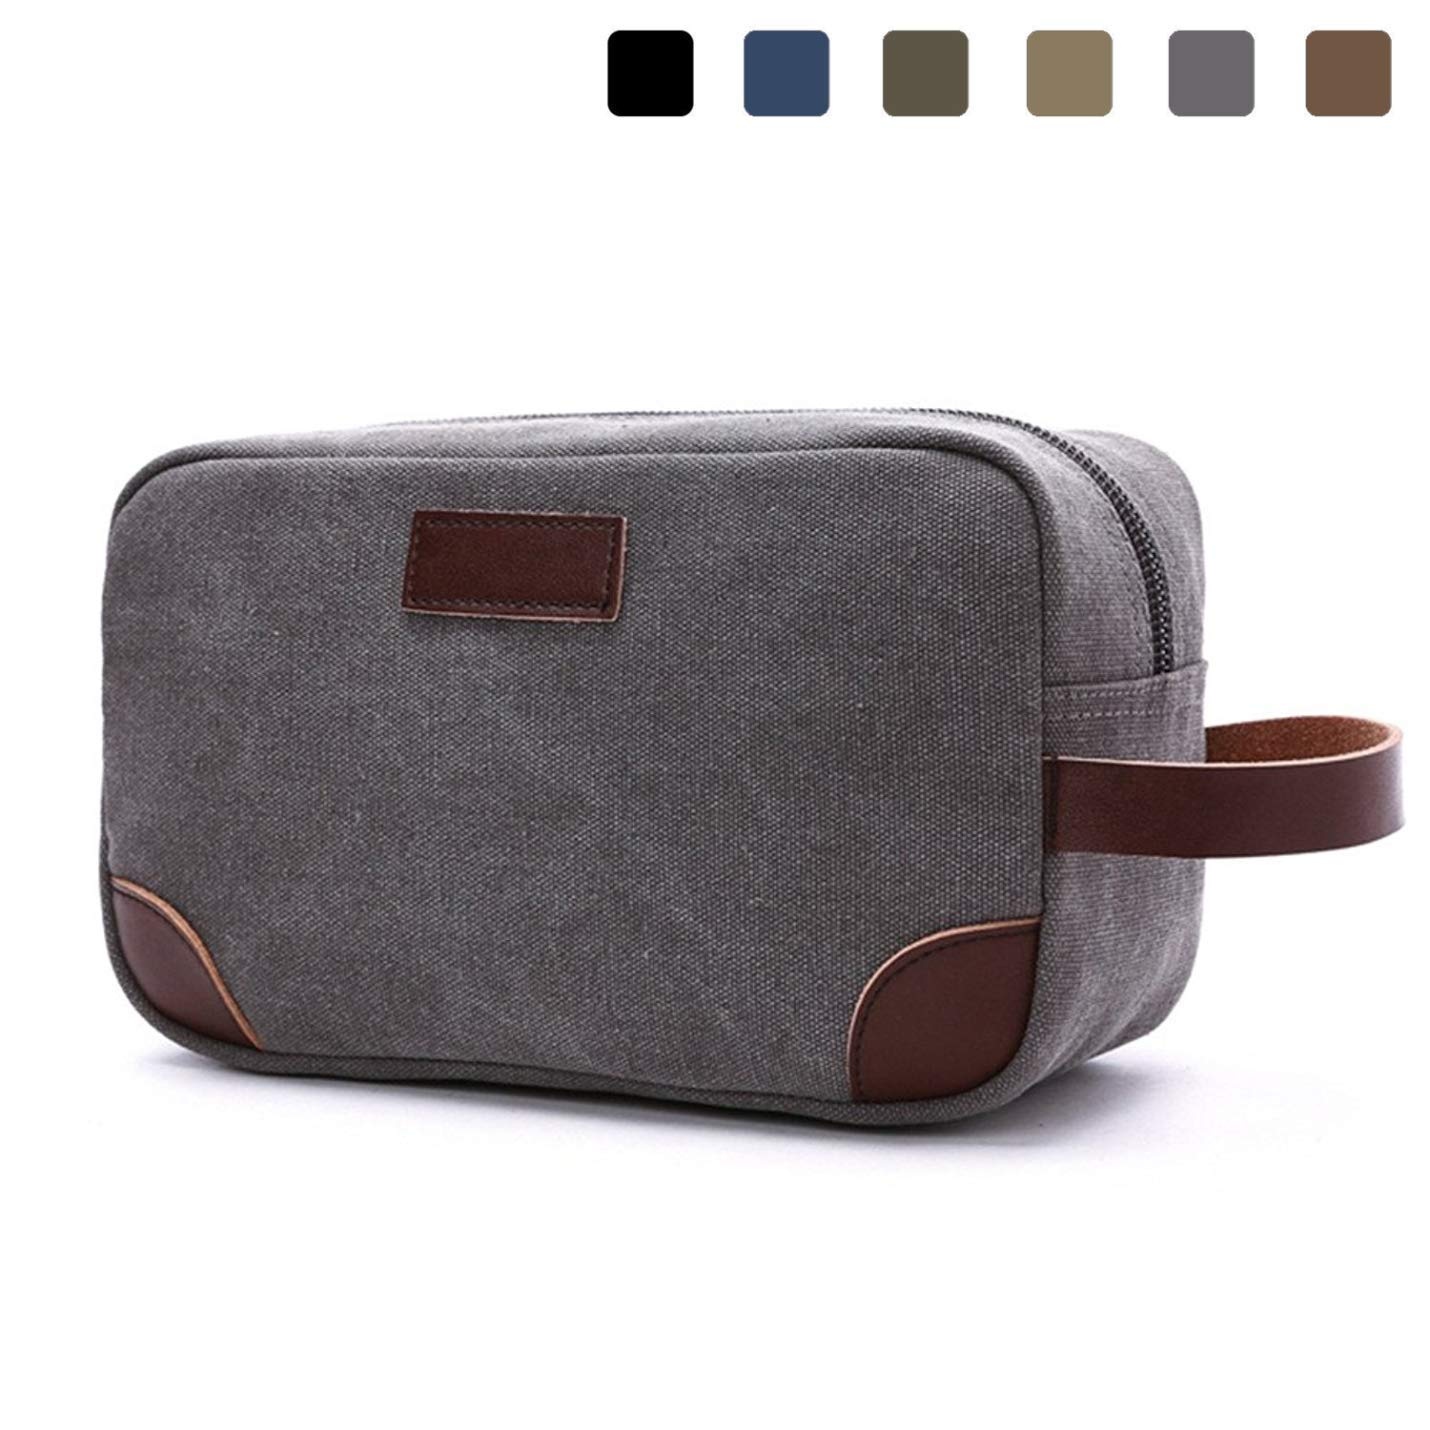 bd425ad013eb Get Quotations · Lanivas Canvas Travel Toiletry Bag Vintage Shaving Dopp Kit  with Leather Handle